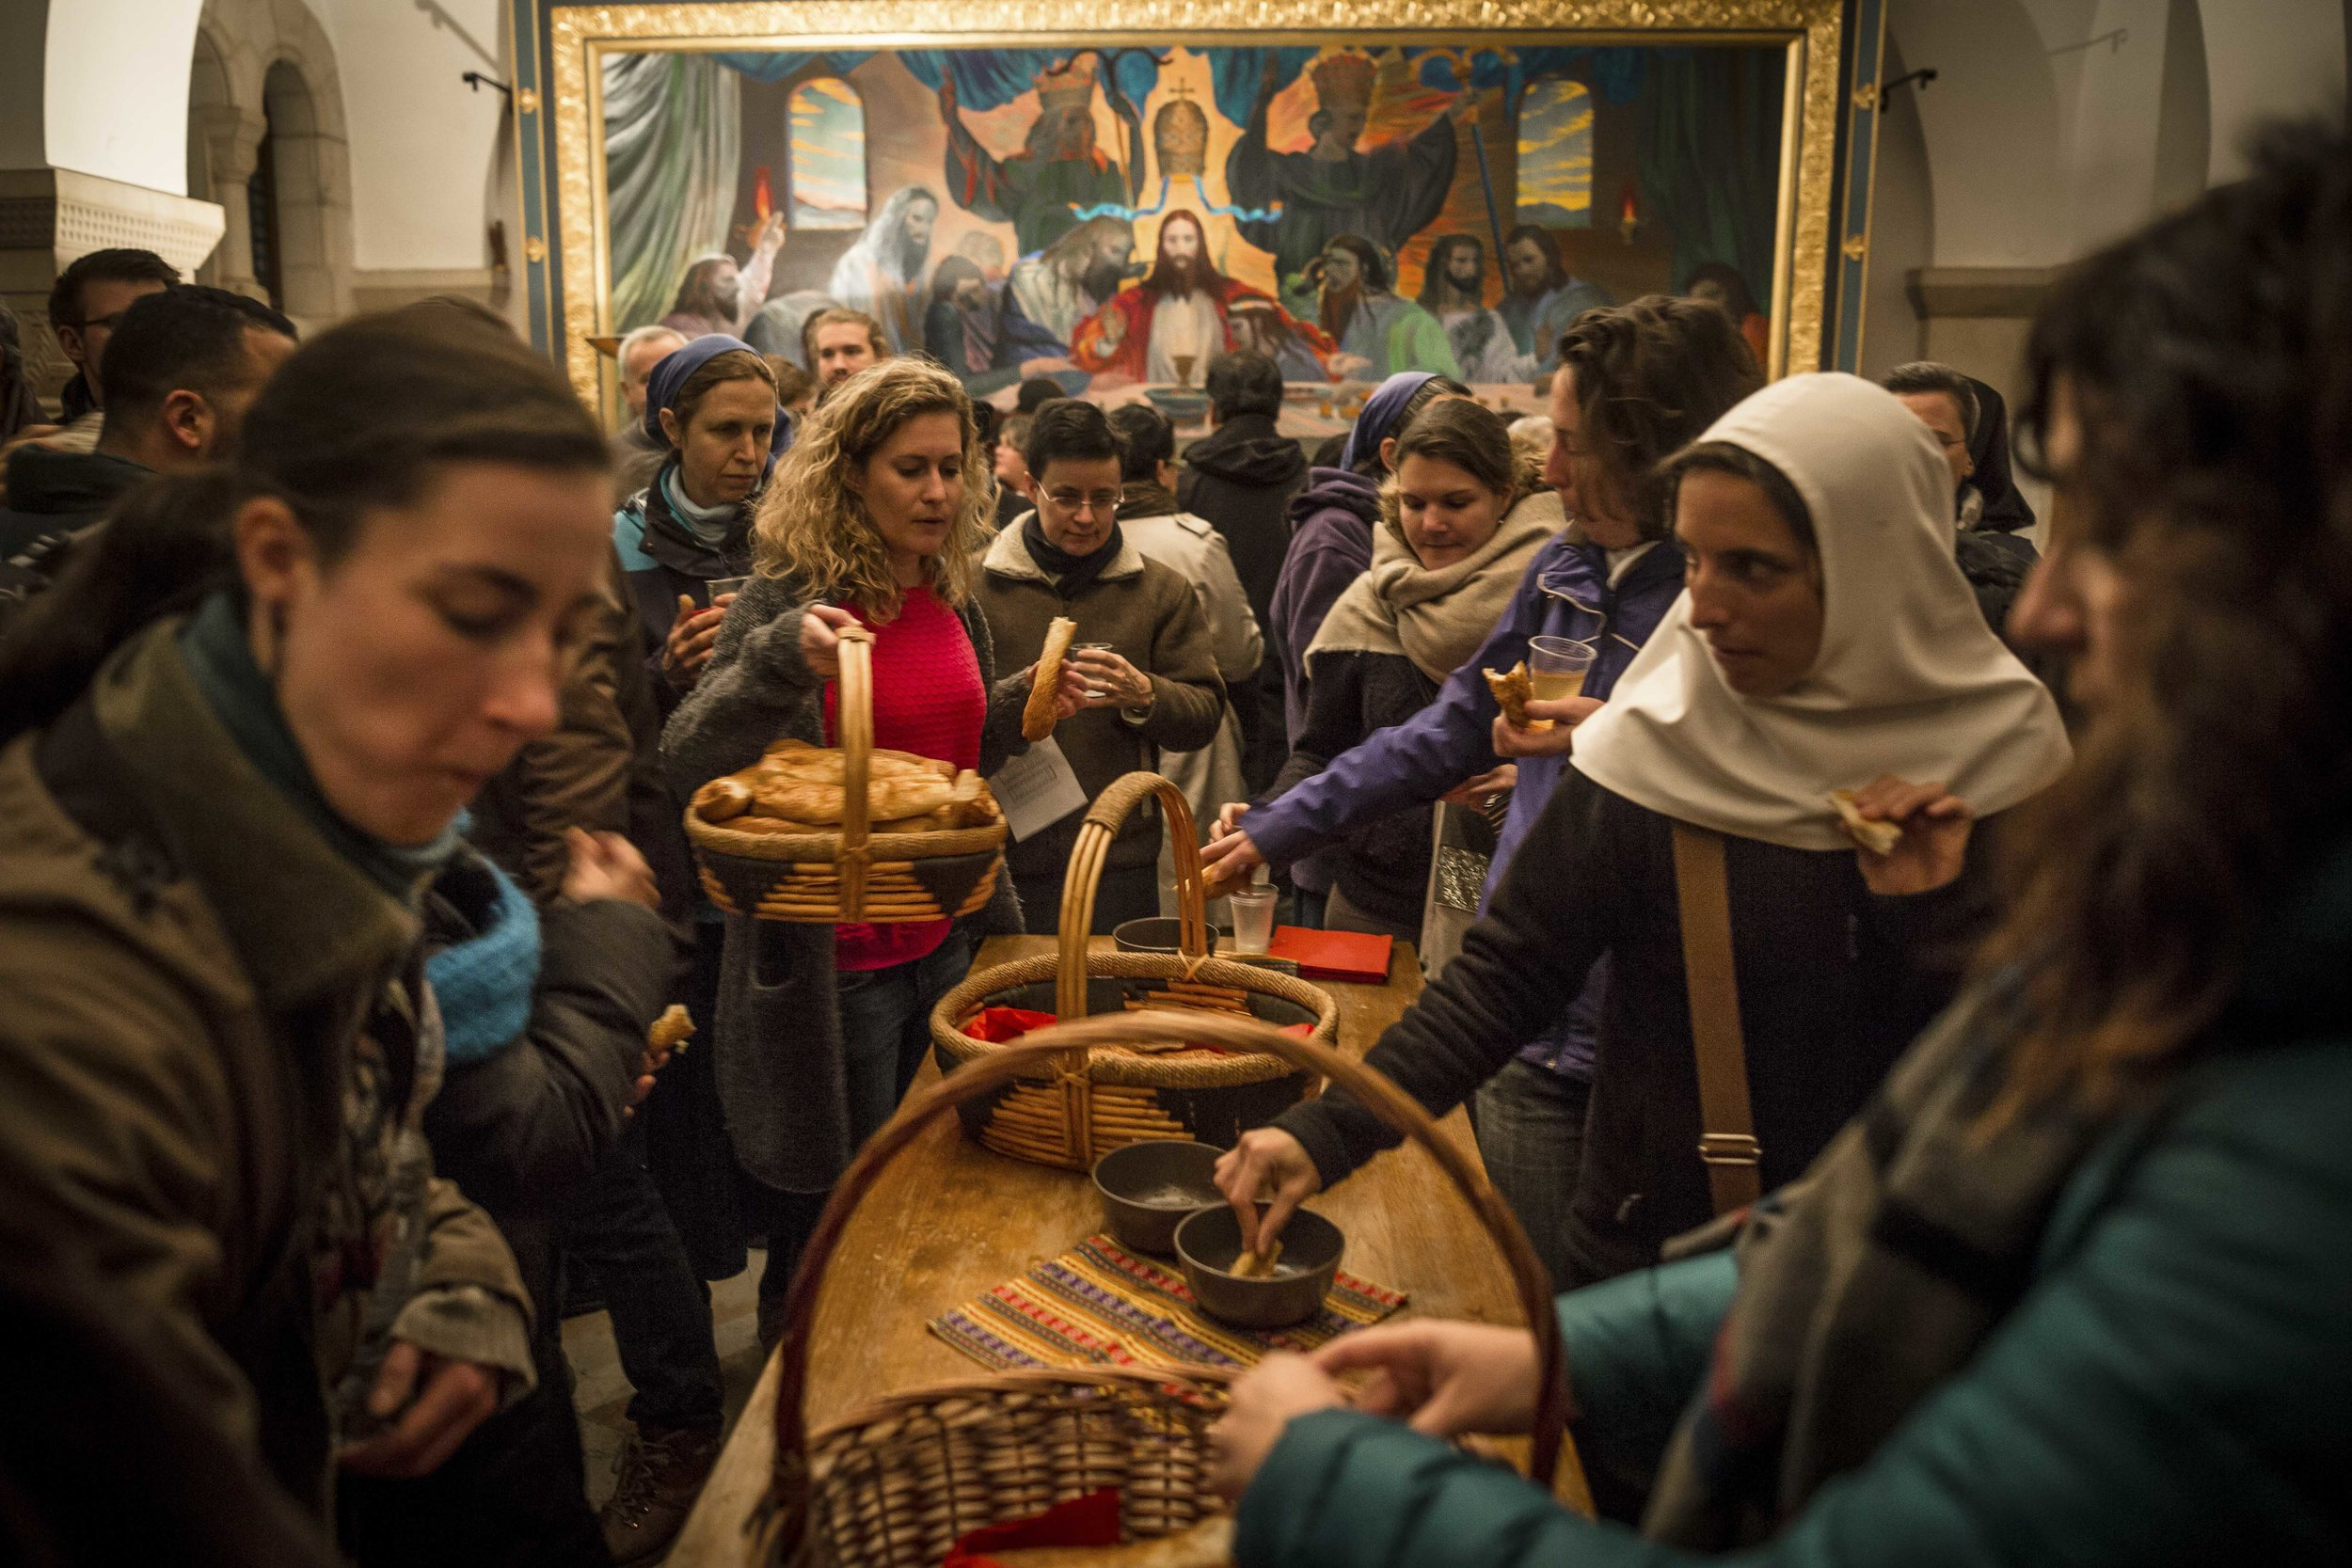 Pilgrims take place on a dinner after a evening mass in the Domicio Abbey on Mount Zion near Jerusalem's Old City